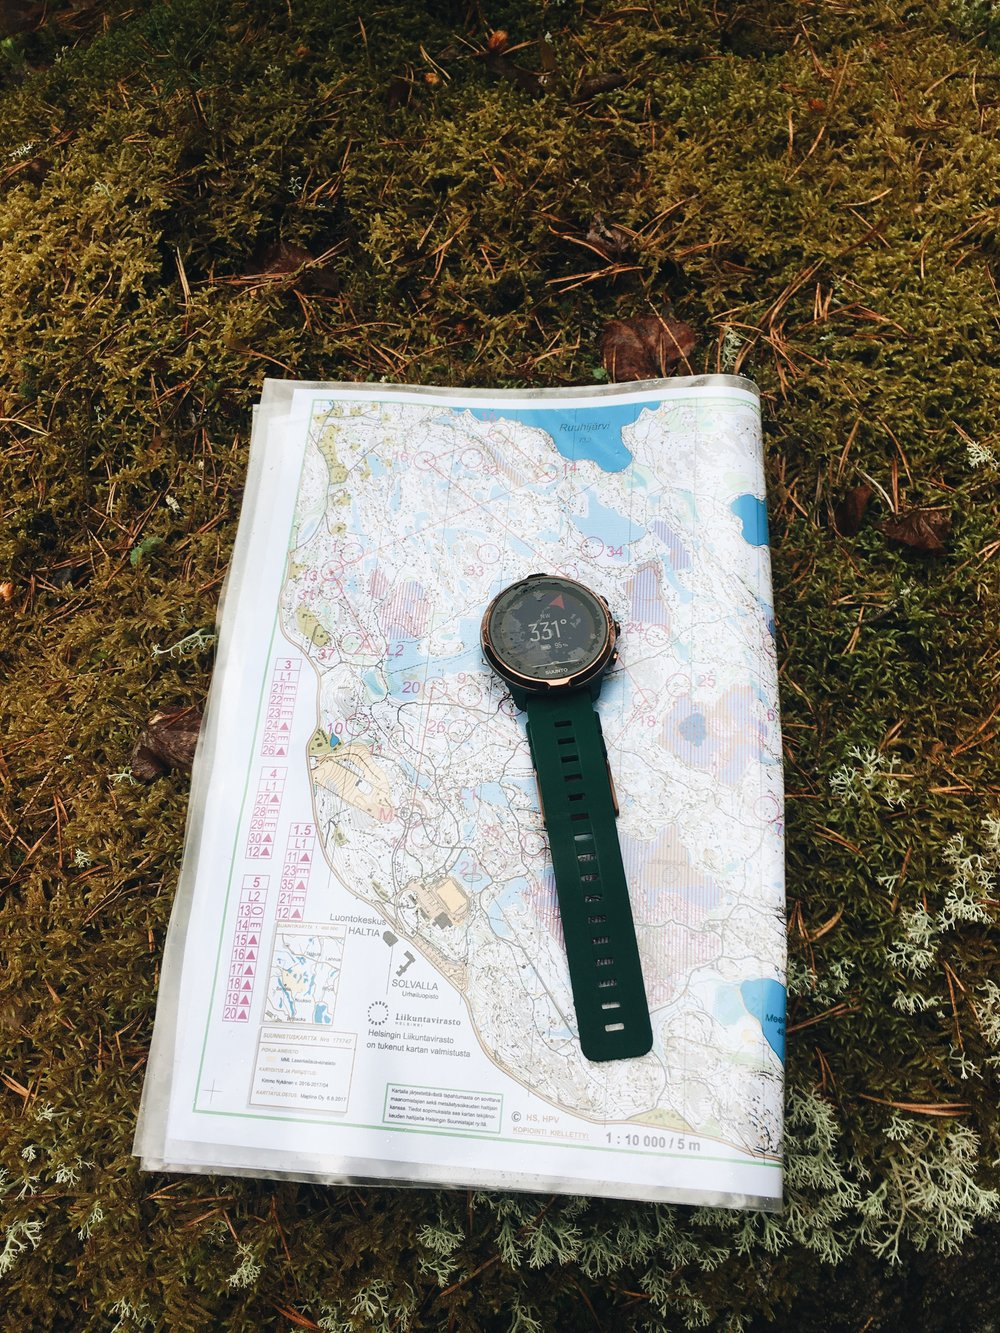 Wet Spartan with orienteering map